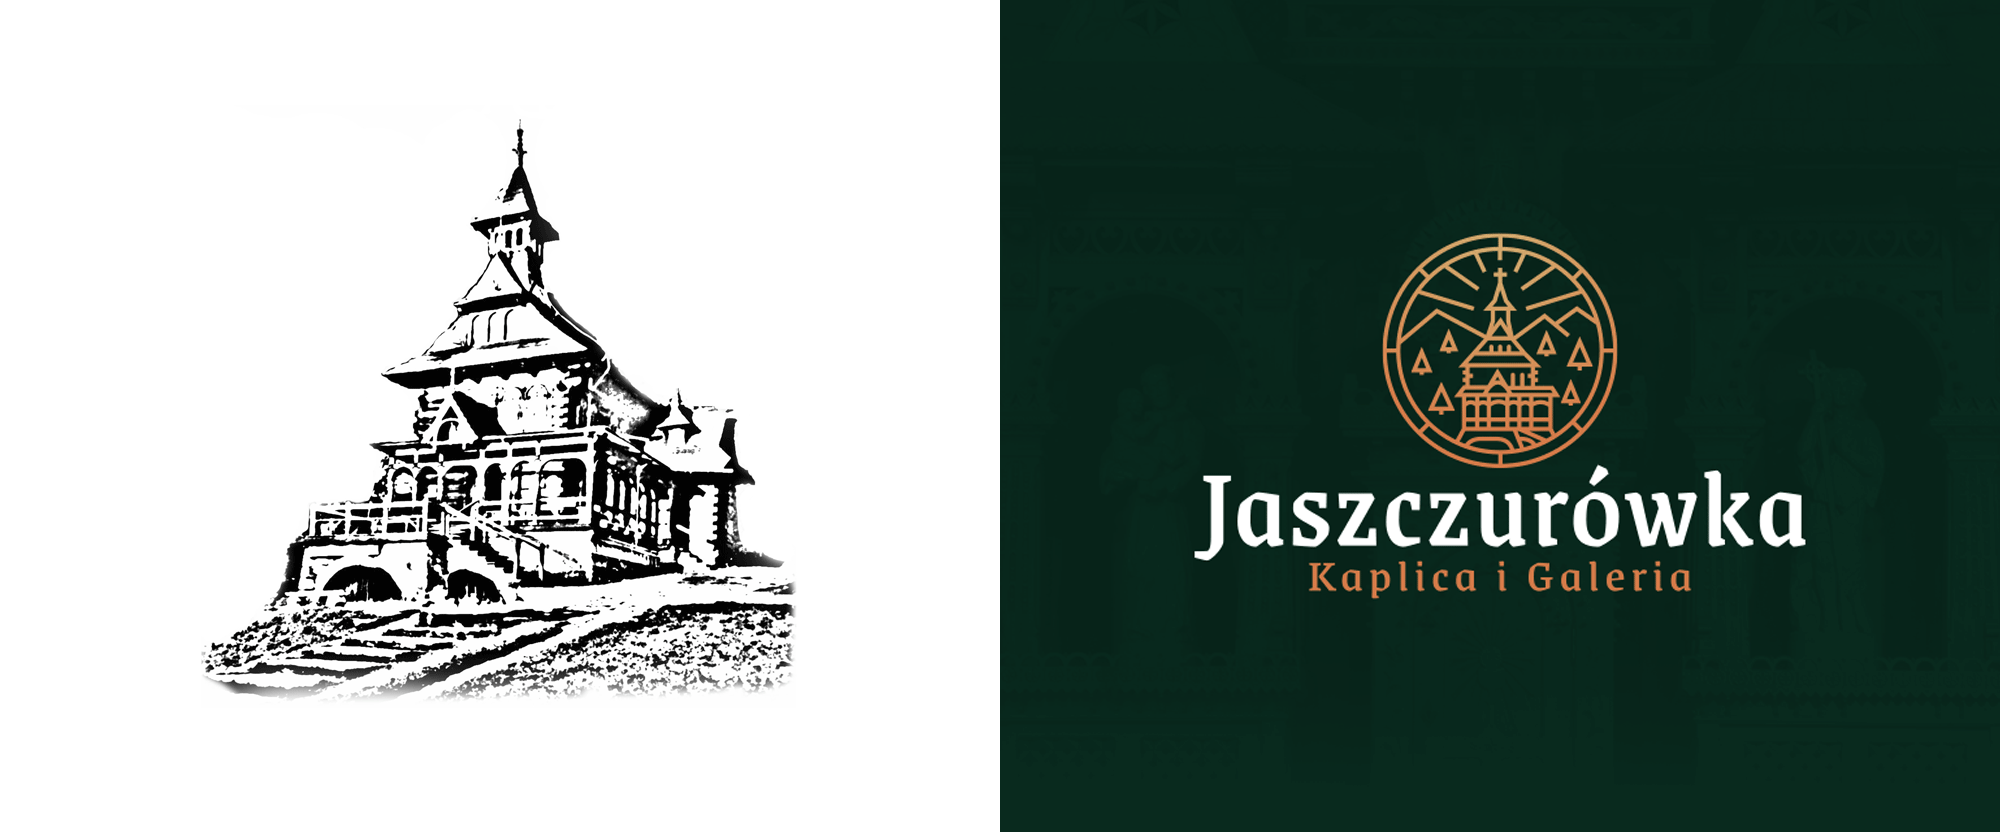 New Logo and Identity for Jaszurówka Chapel by Industi